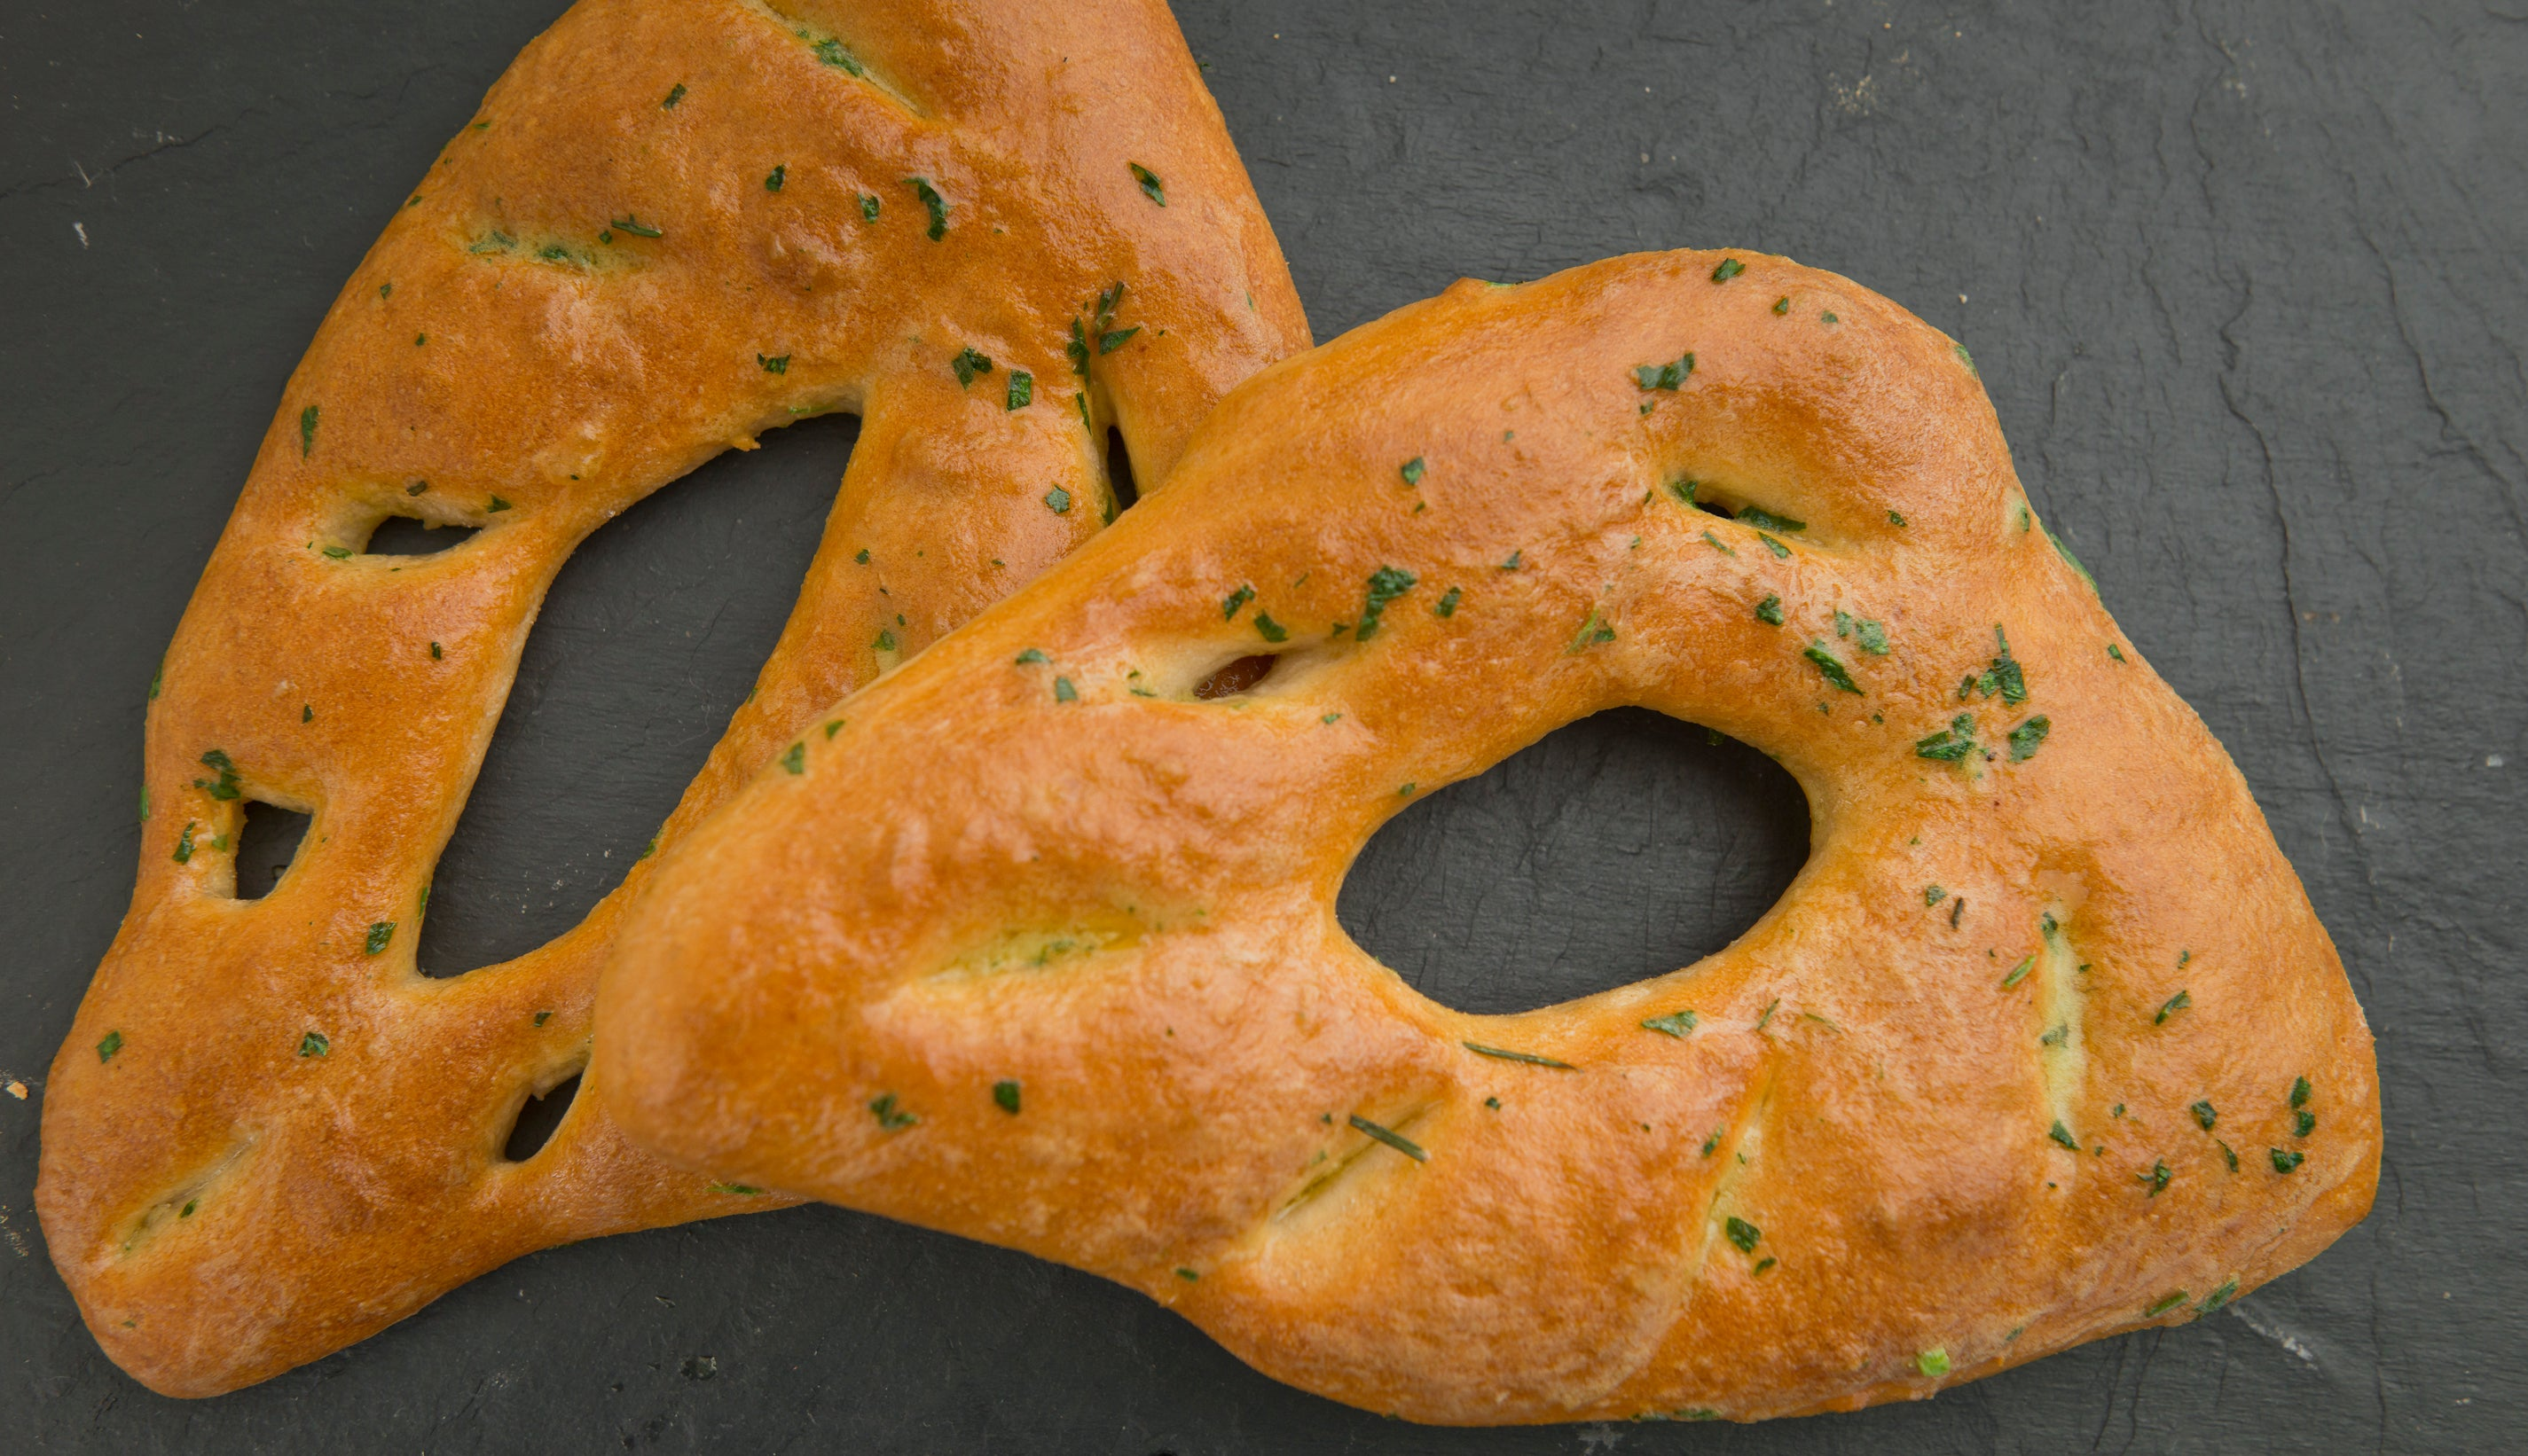 Fougasse with rosemary & garlic butter (V) for two to share